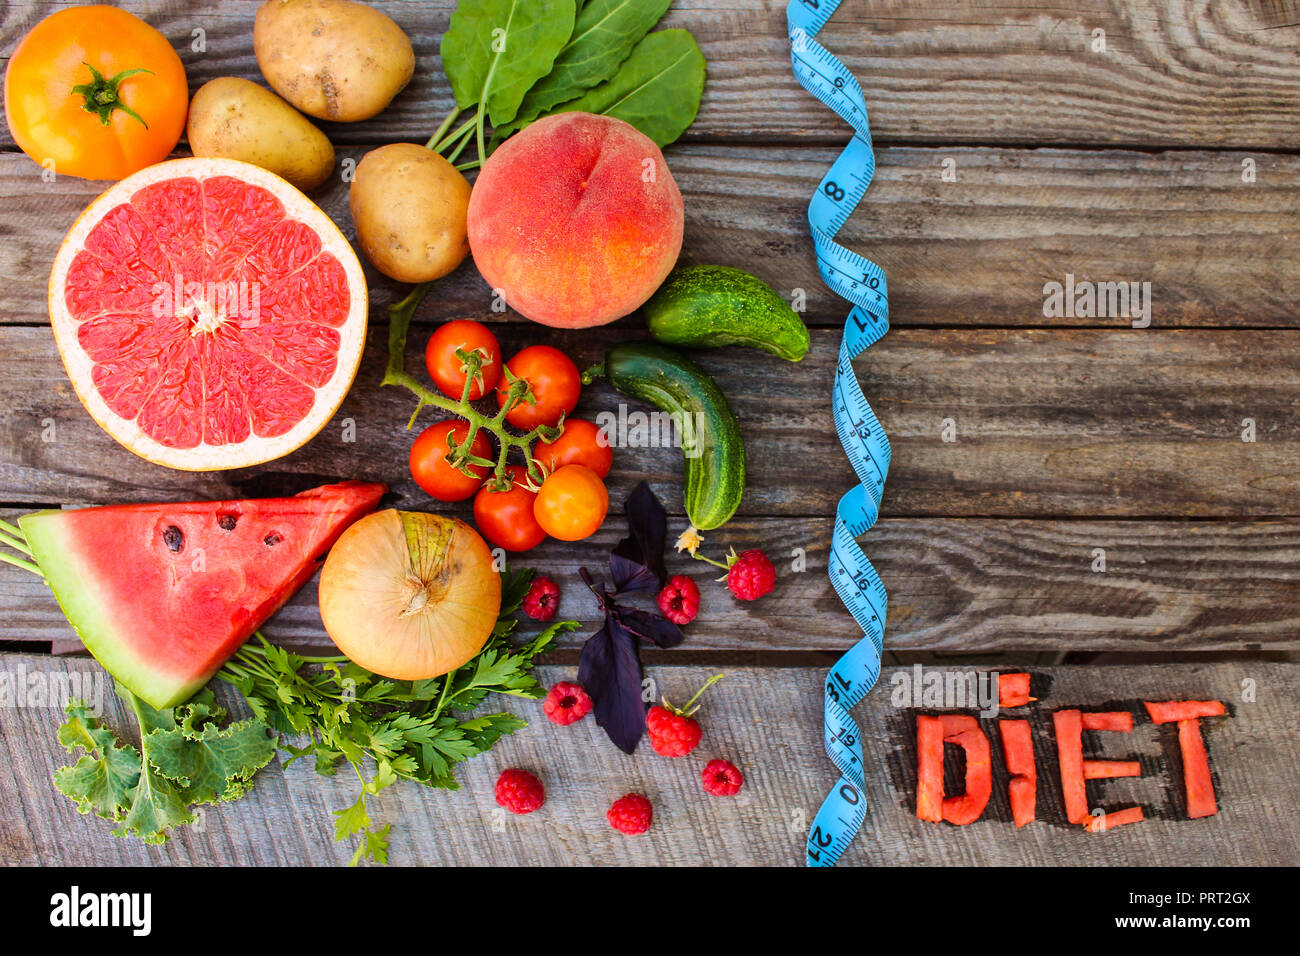 Fruits, vegetables and in measure tape in diet on wooden background. word diet written in English slices of watermelon. - Stock Image